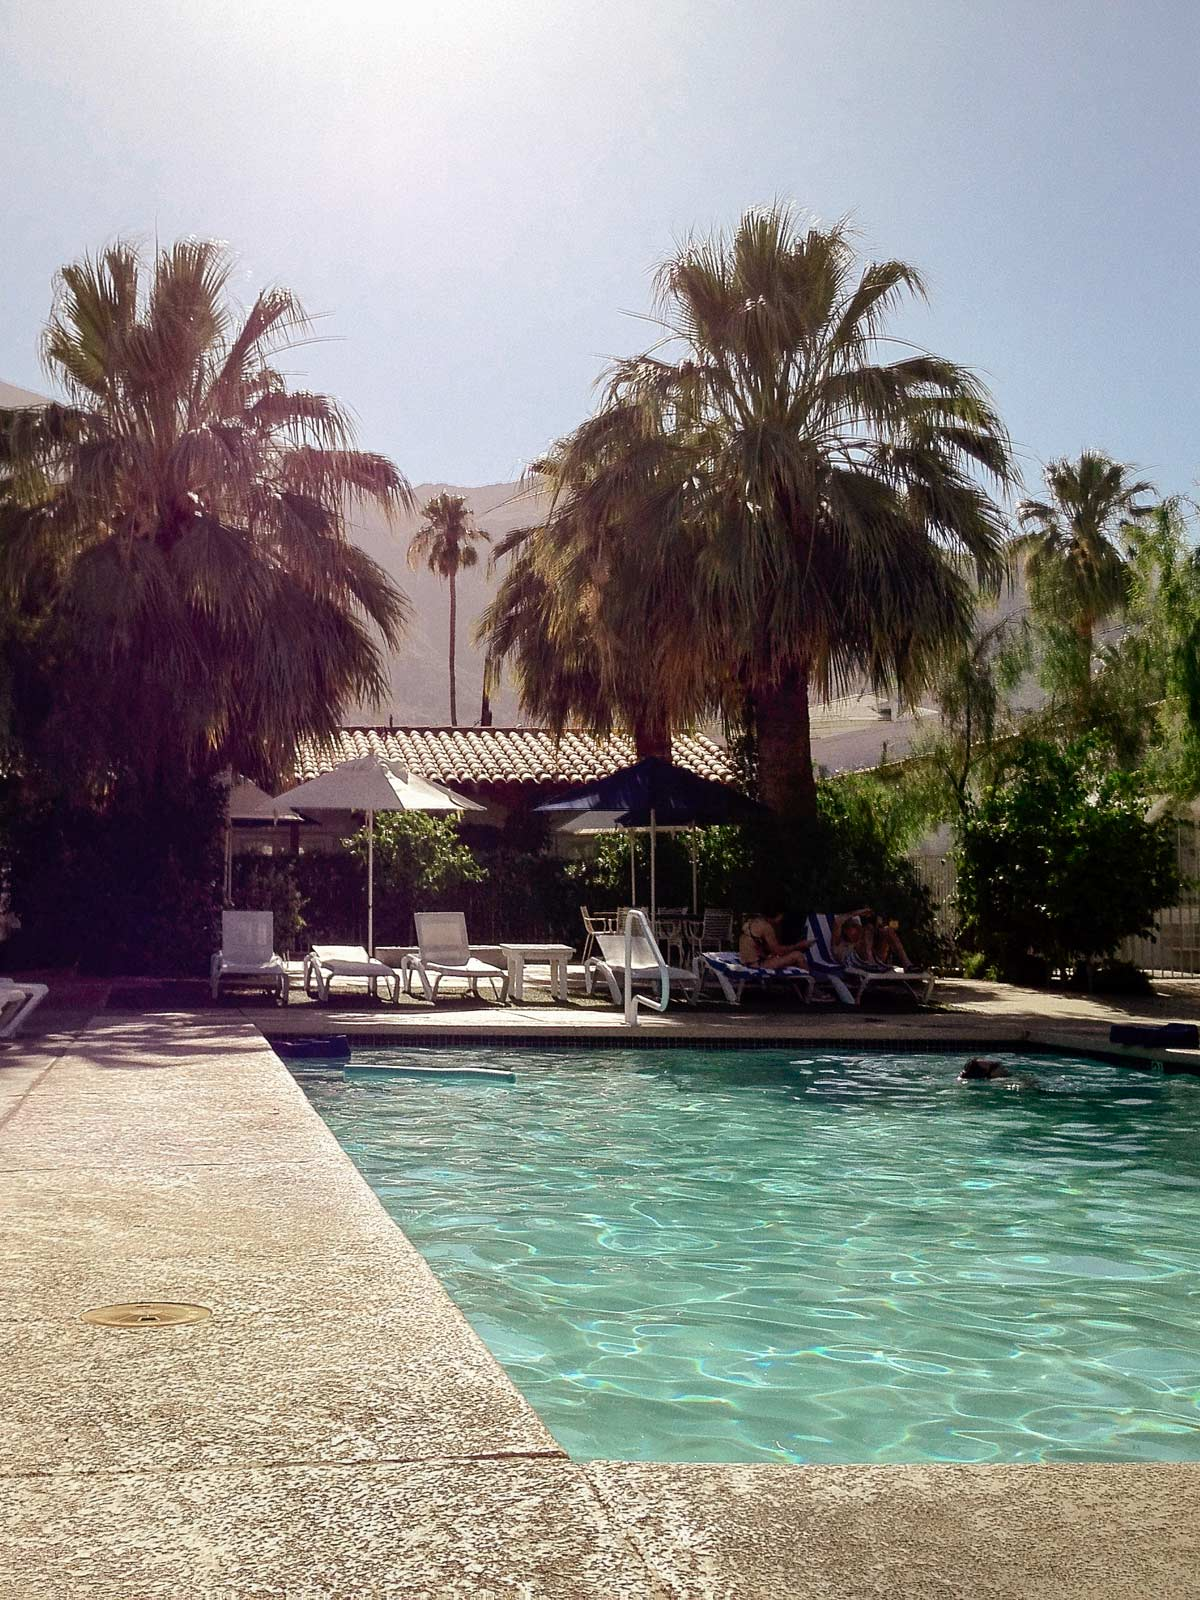 Pool Life - Palm Springs